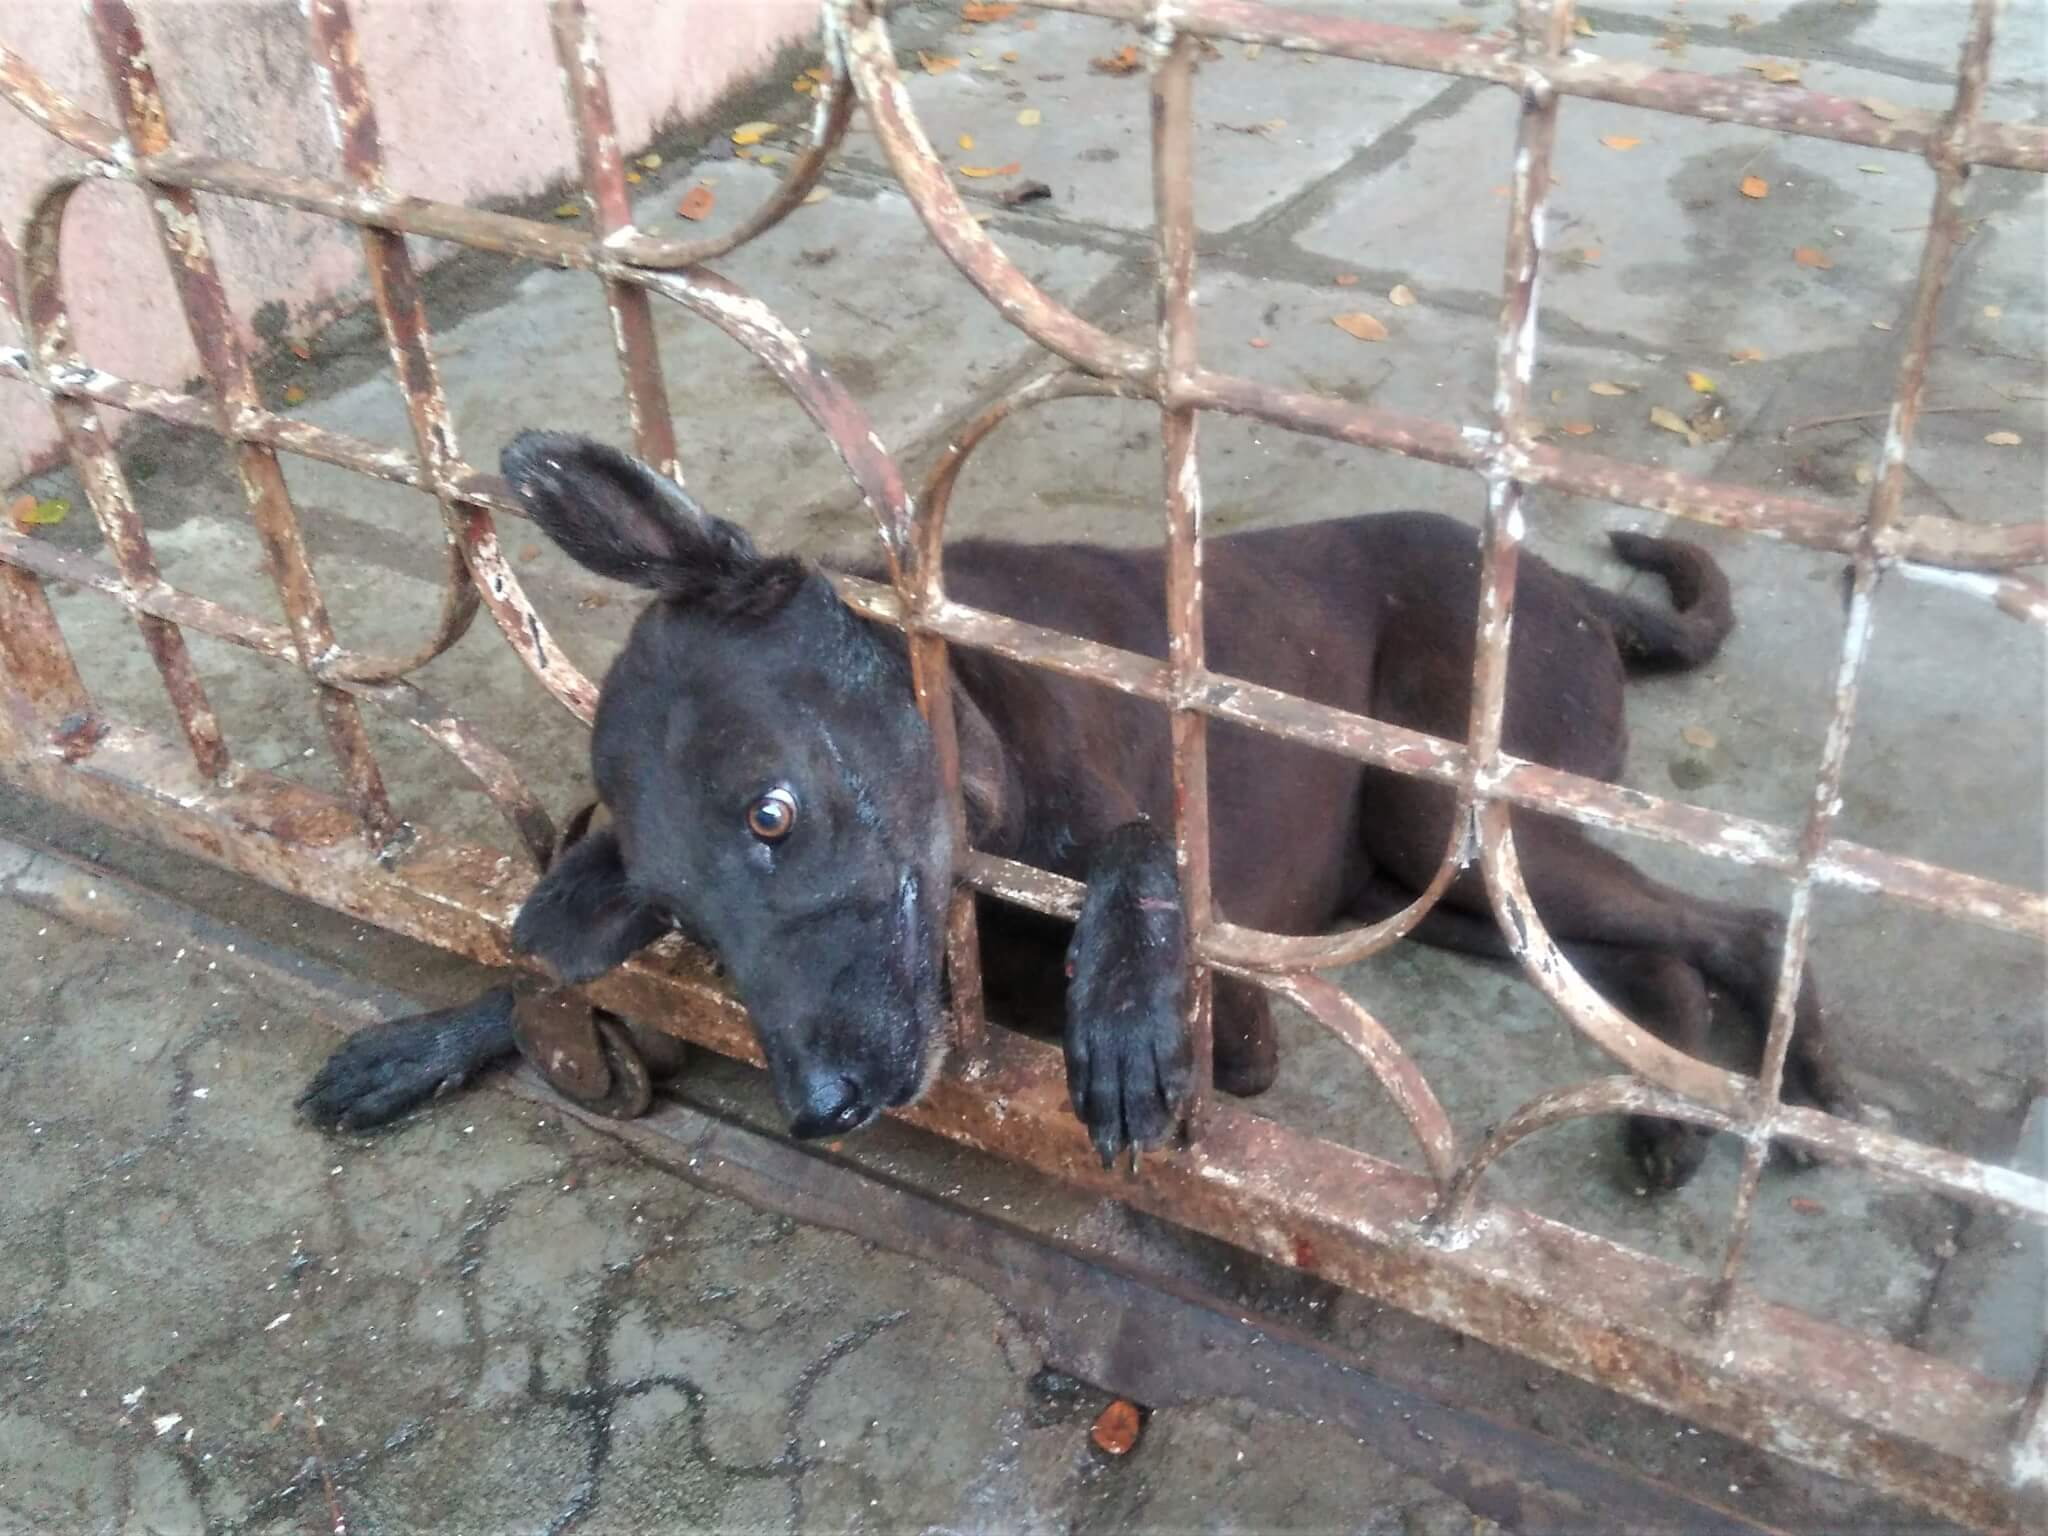 A dog lies on the ground with his head trapped between the bars of a gate.